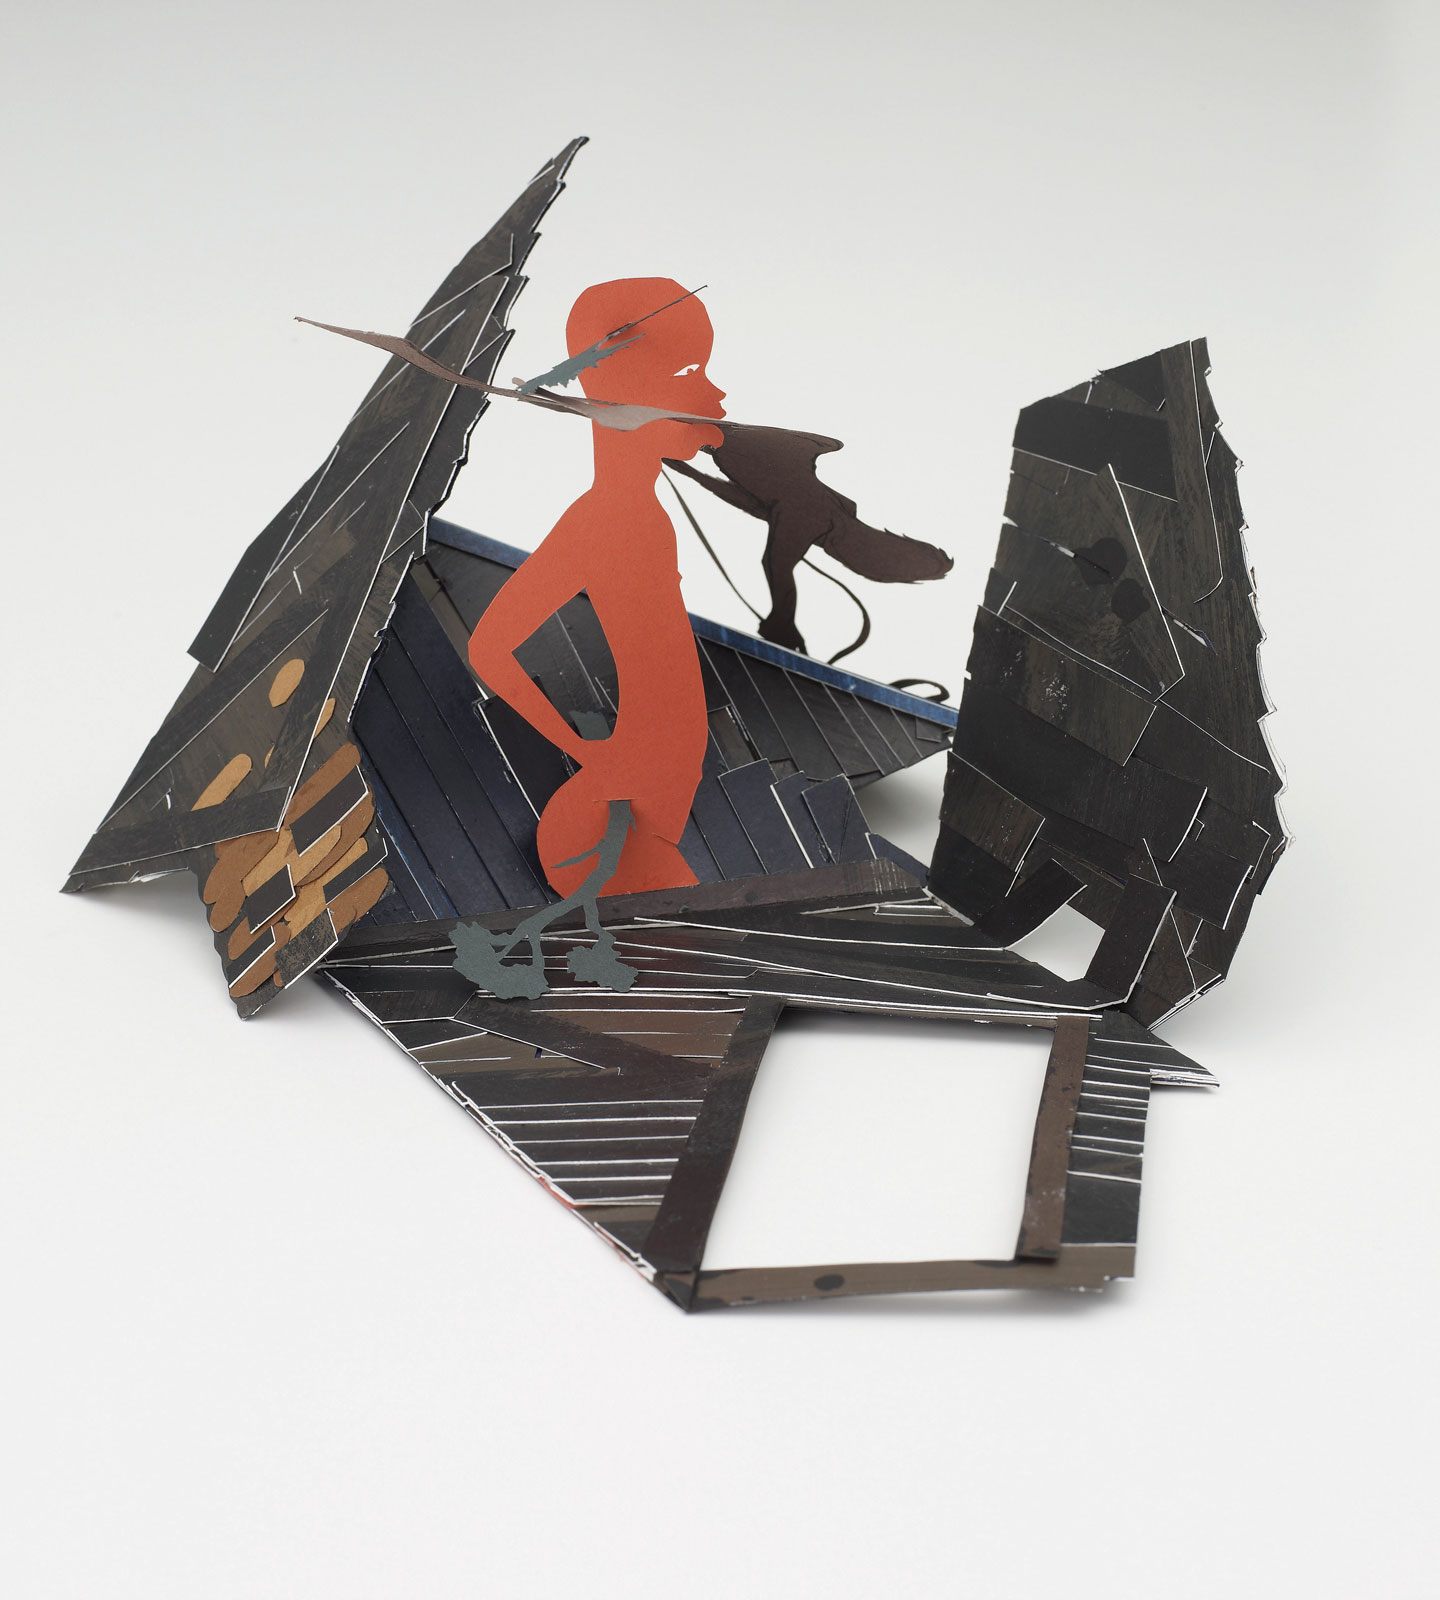 <i>Cabin</i> (2009), 12˝ × 9.5˝ × 5˝, cut paper and paint